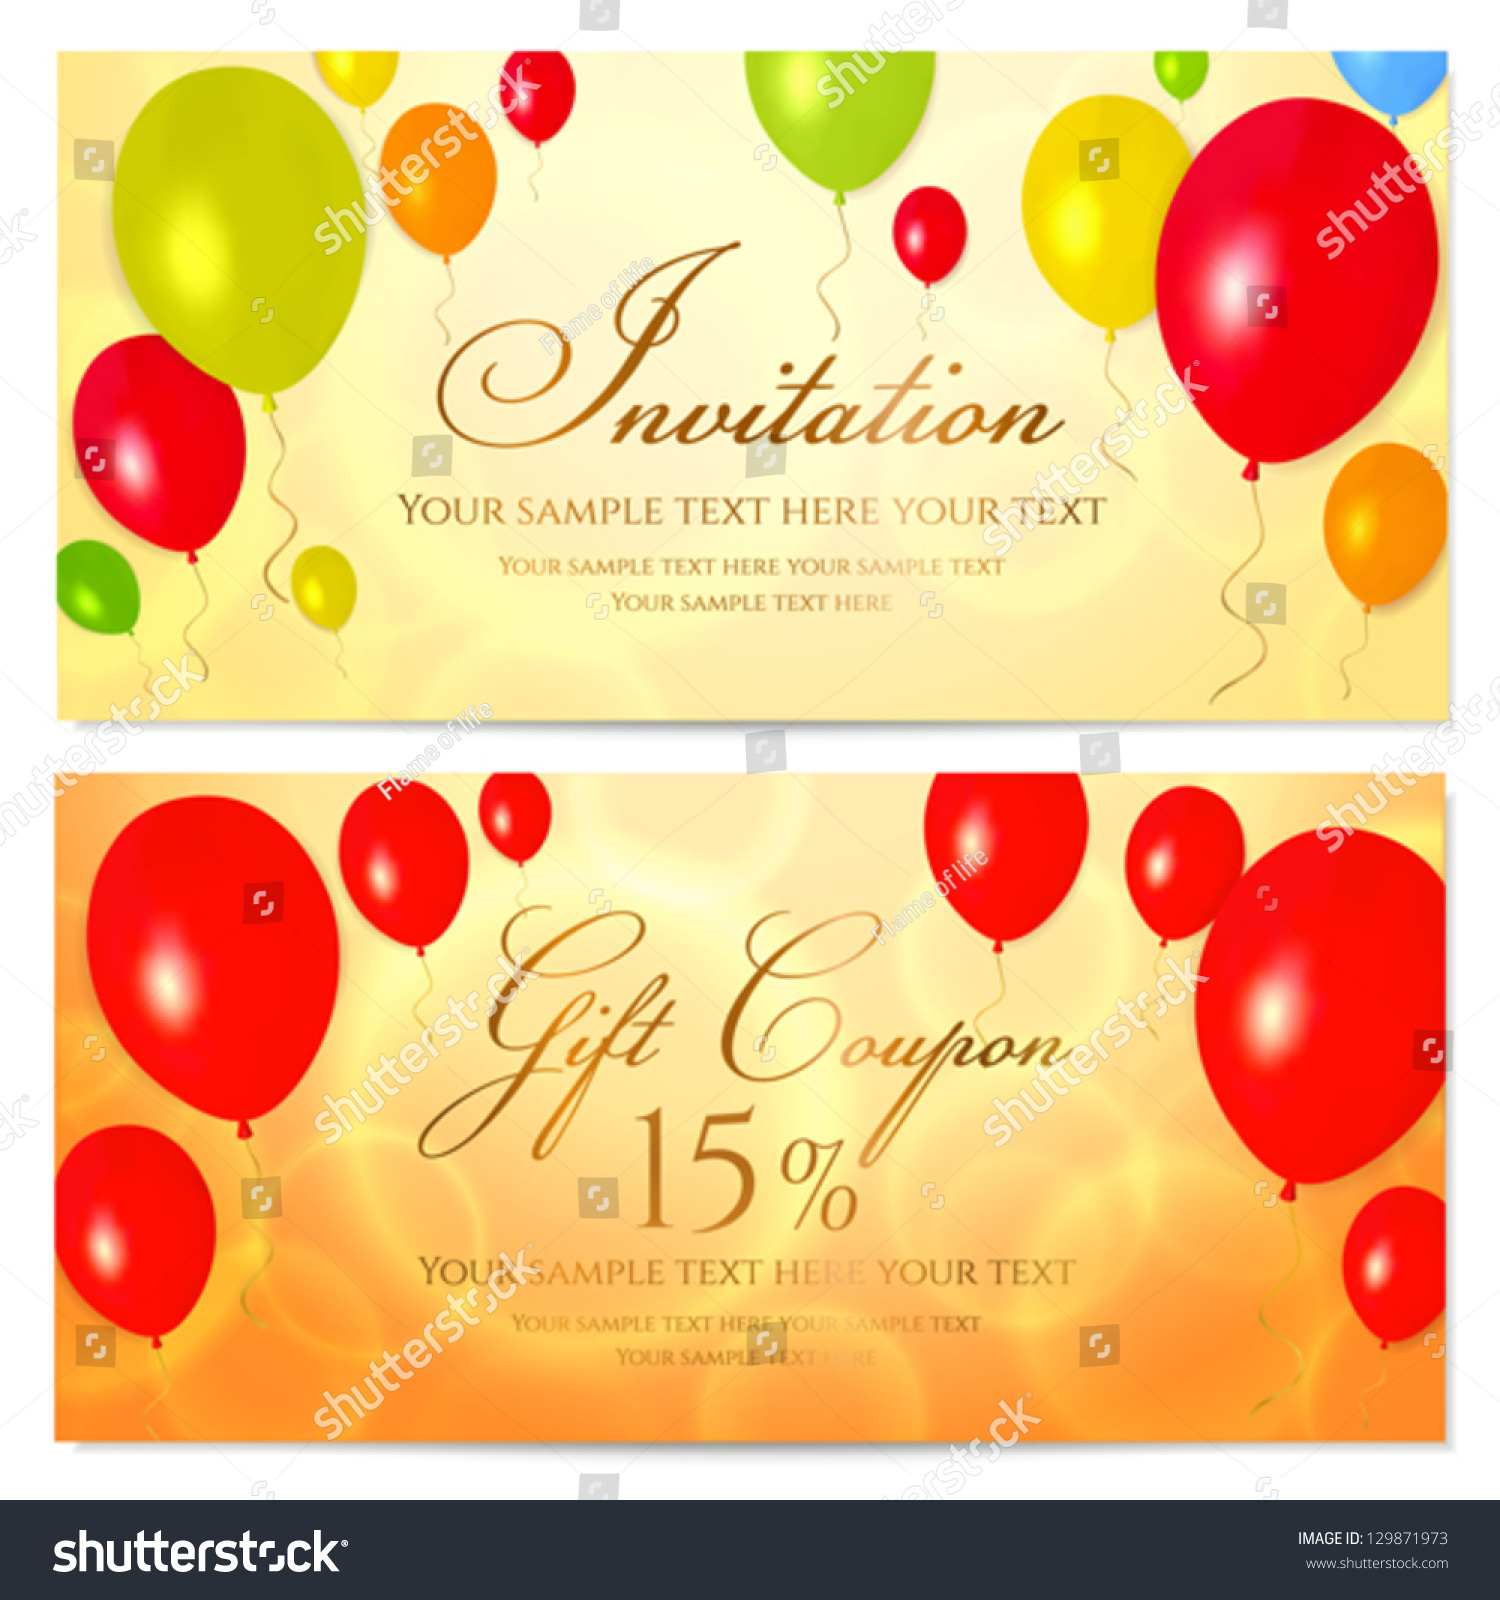 Voucher Card Template gift design for special time temp stock – Voucher Card Template